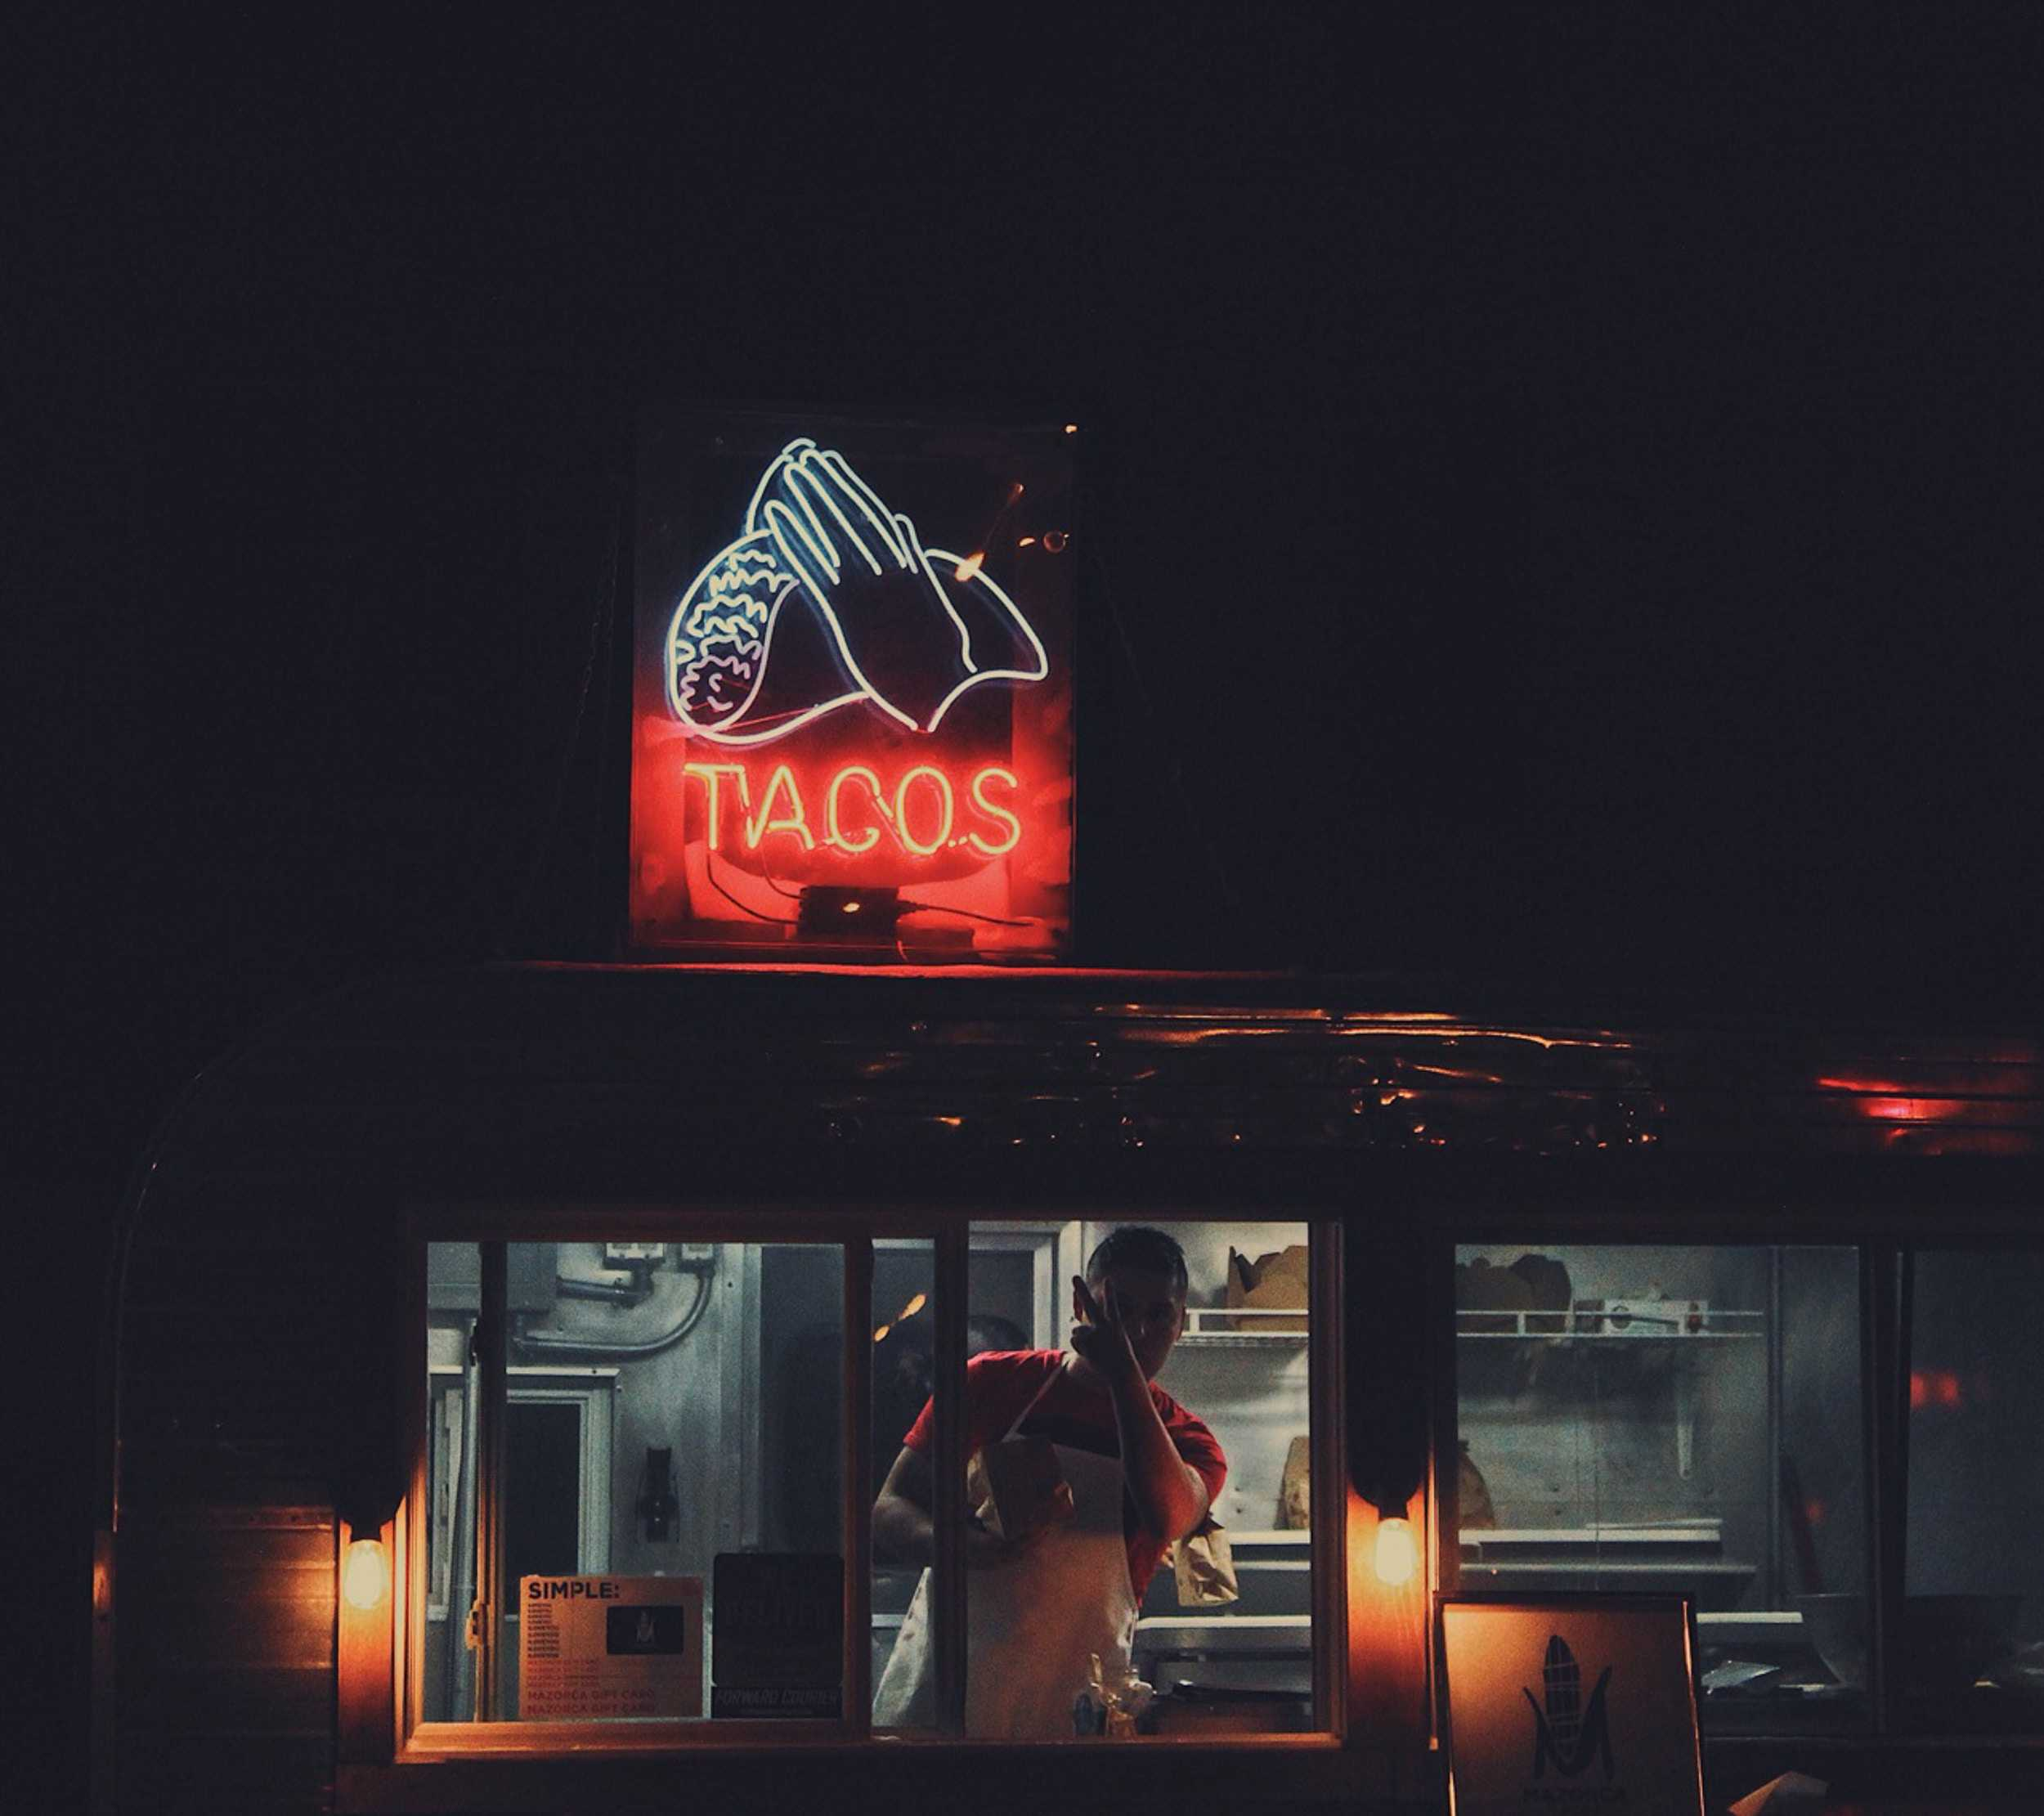 Lights that say taco and a man behind a window